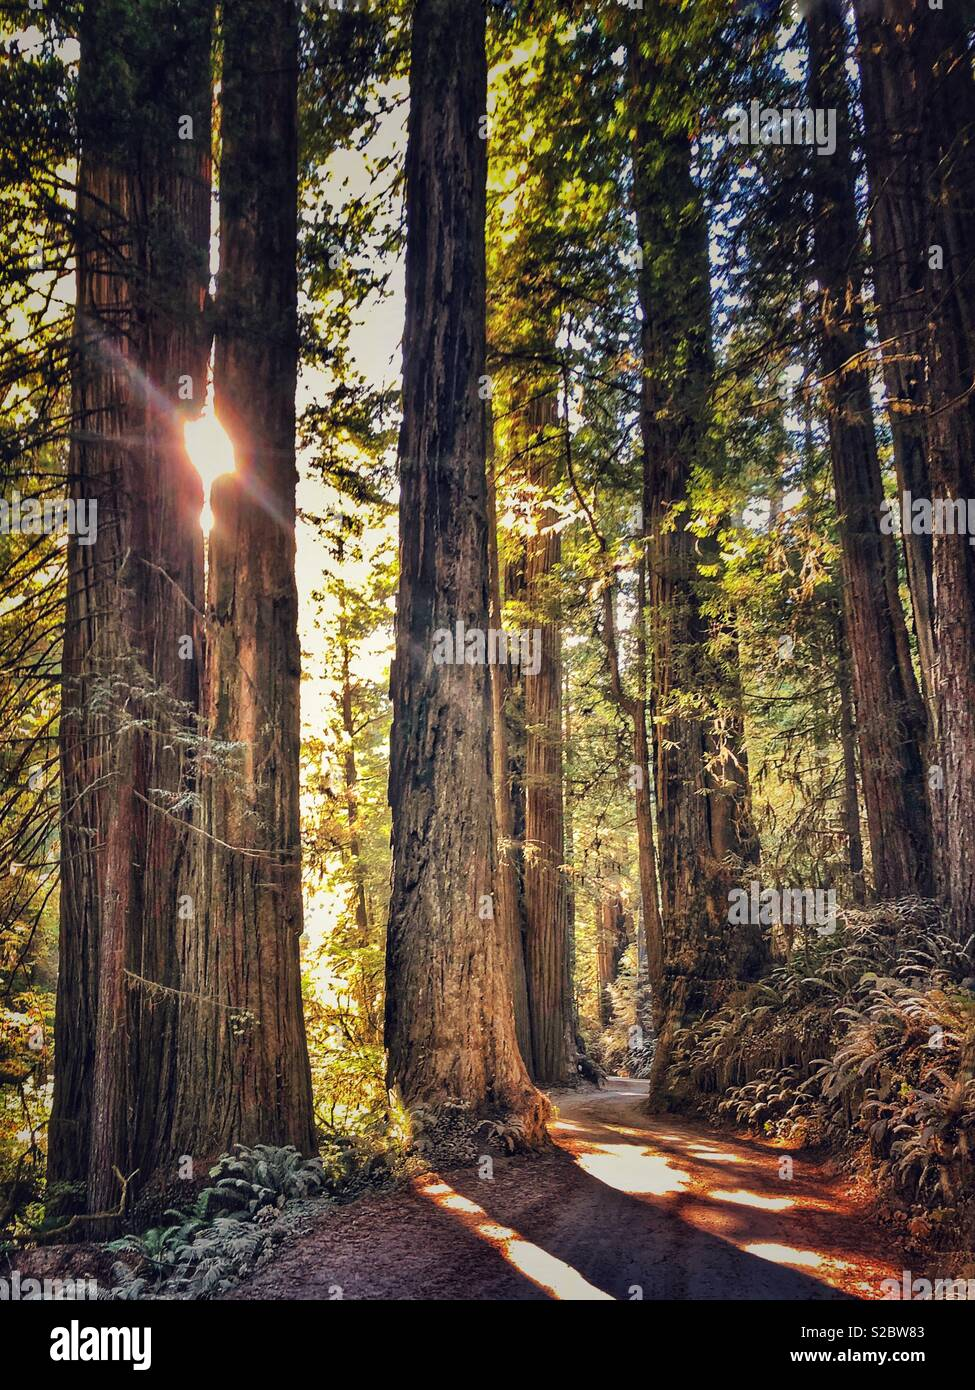 Road through the redwood forest. - Stock Image